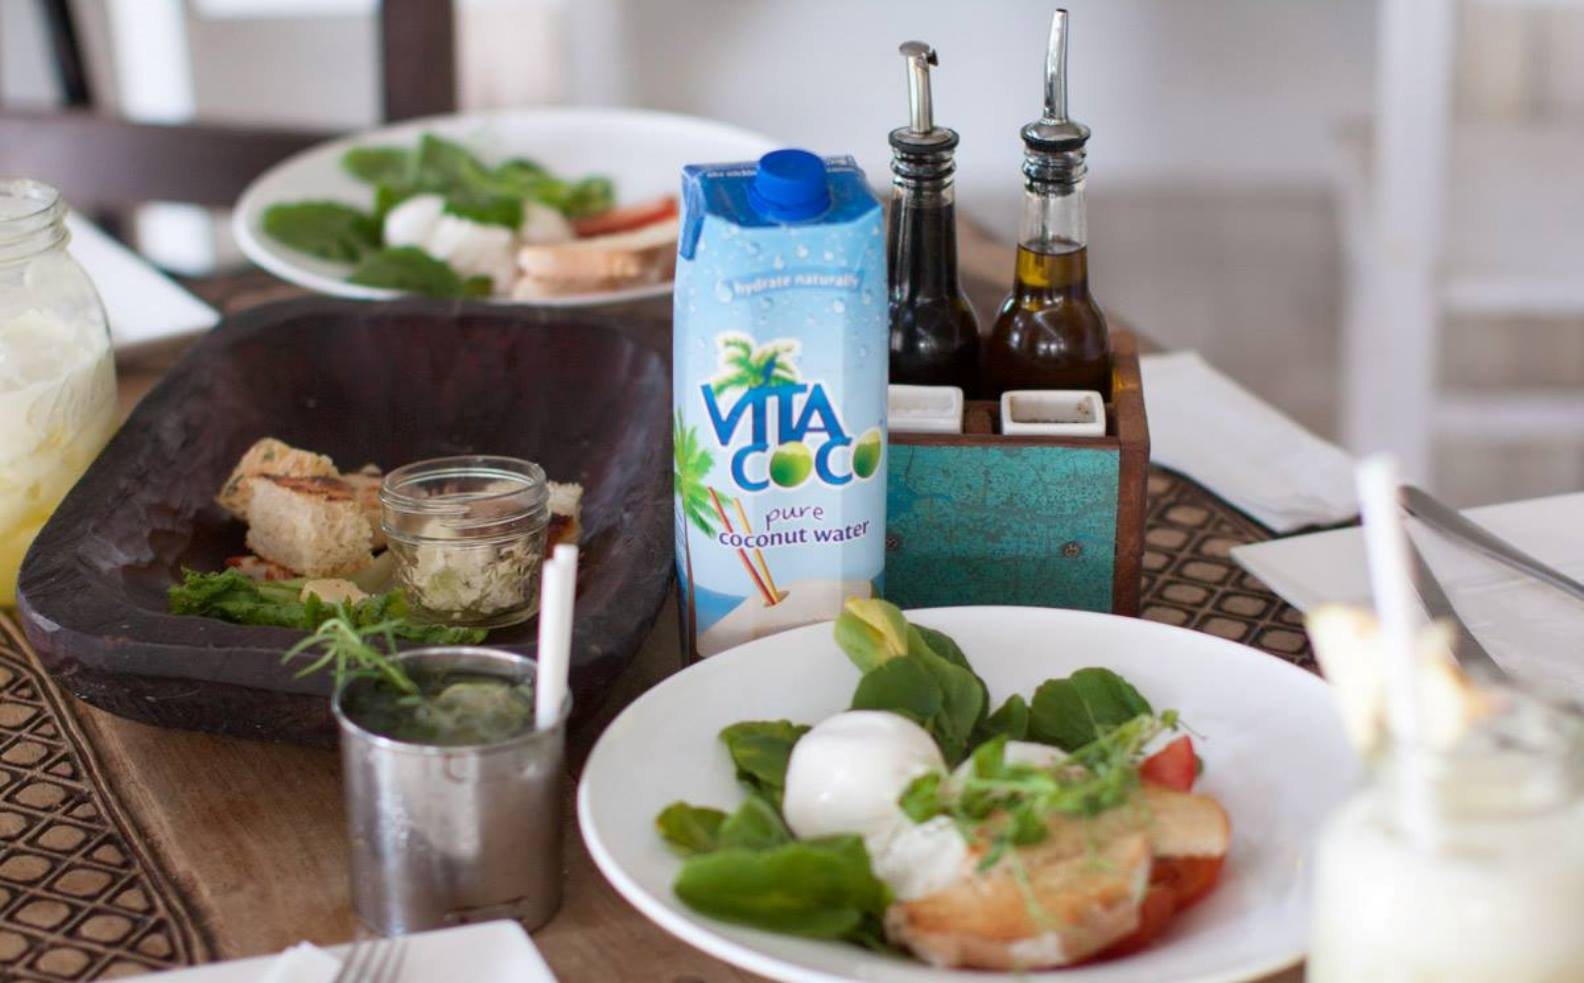 Vita Coco is sold in major US retailers including Target, Walmart, Cosco, CVS, Whole Foods, Publix and more.